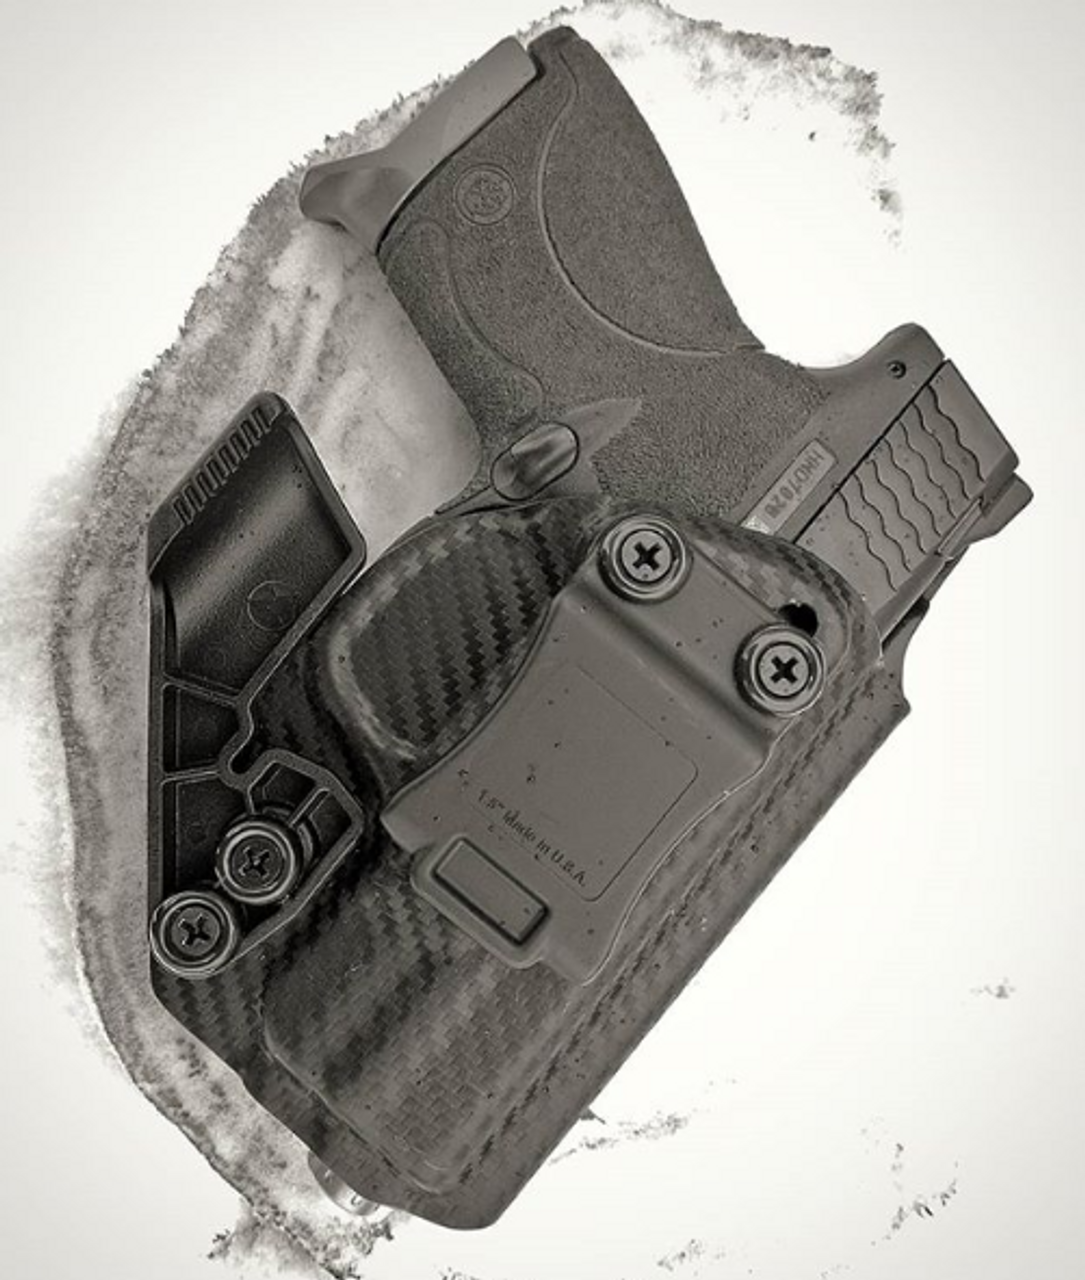 M&P Shield Appendix Carry Kydex Holster